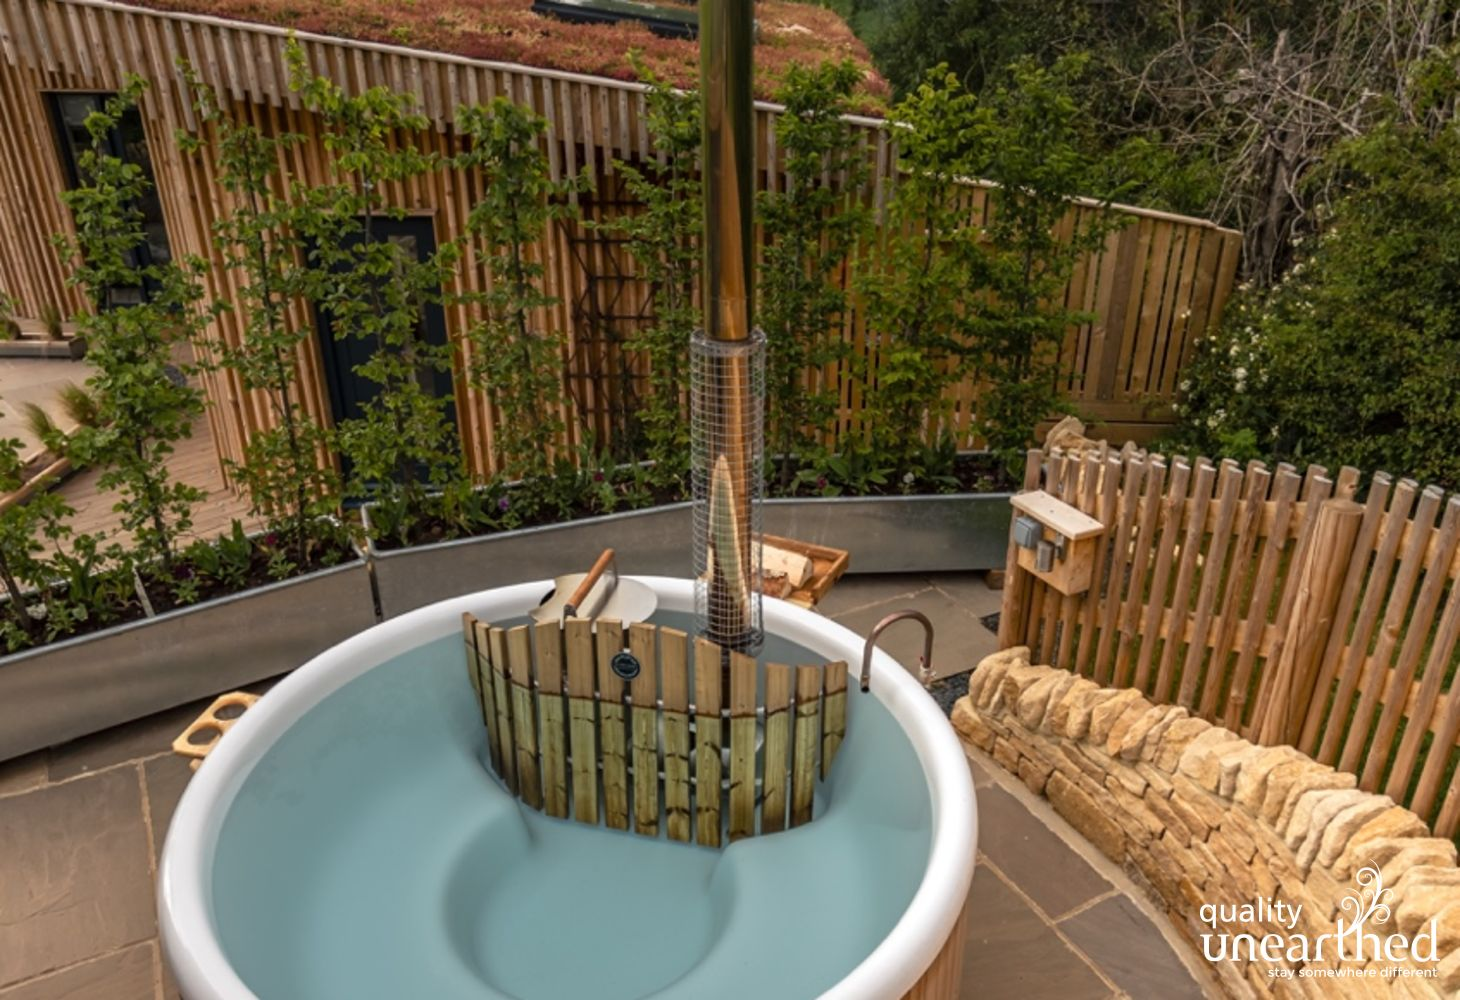 The Swedish log fired hot tub sits on a terrace with view across the Malvern countryside, over the sedum roof of the handcrafted luxury glamping lodge